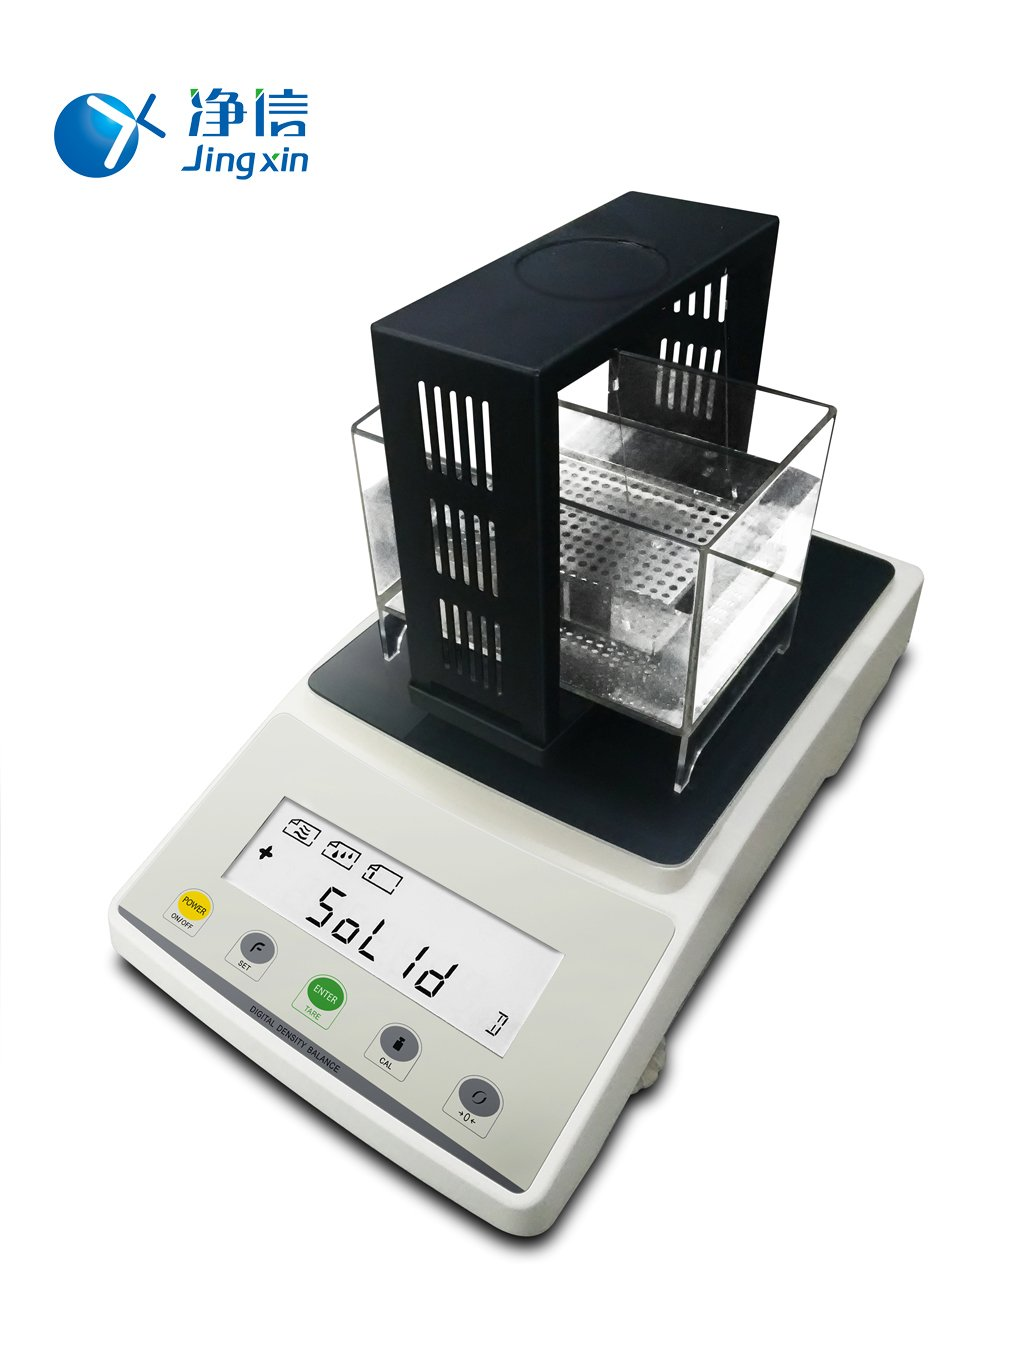 Jingxin Technology Laboratory Density Balance Instrument Scientific Density Gravity Meter Balance 210g/1mg Equipment JA203M